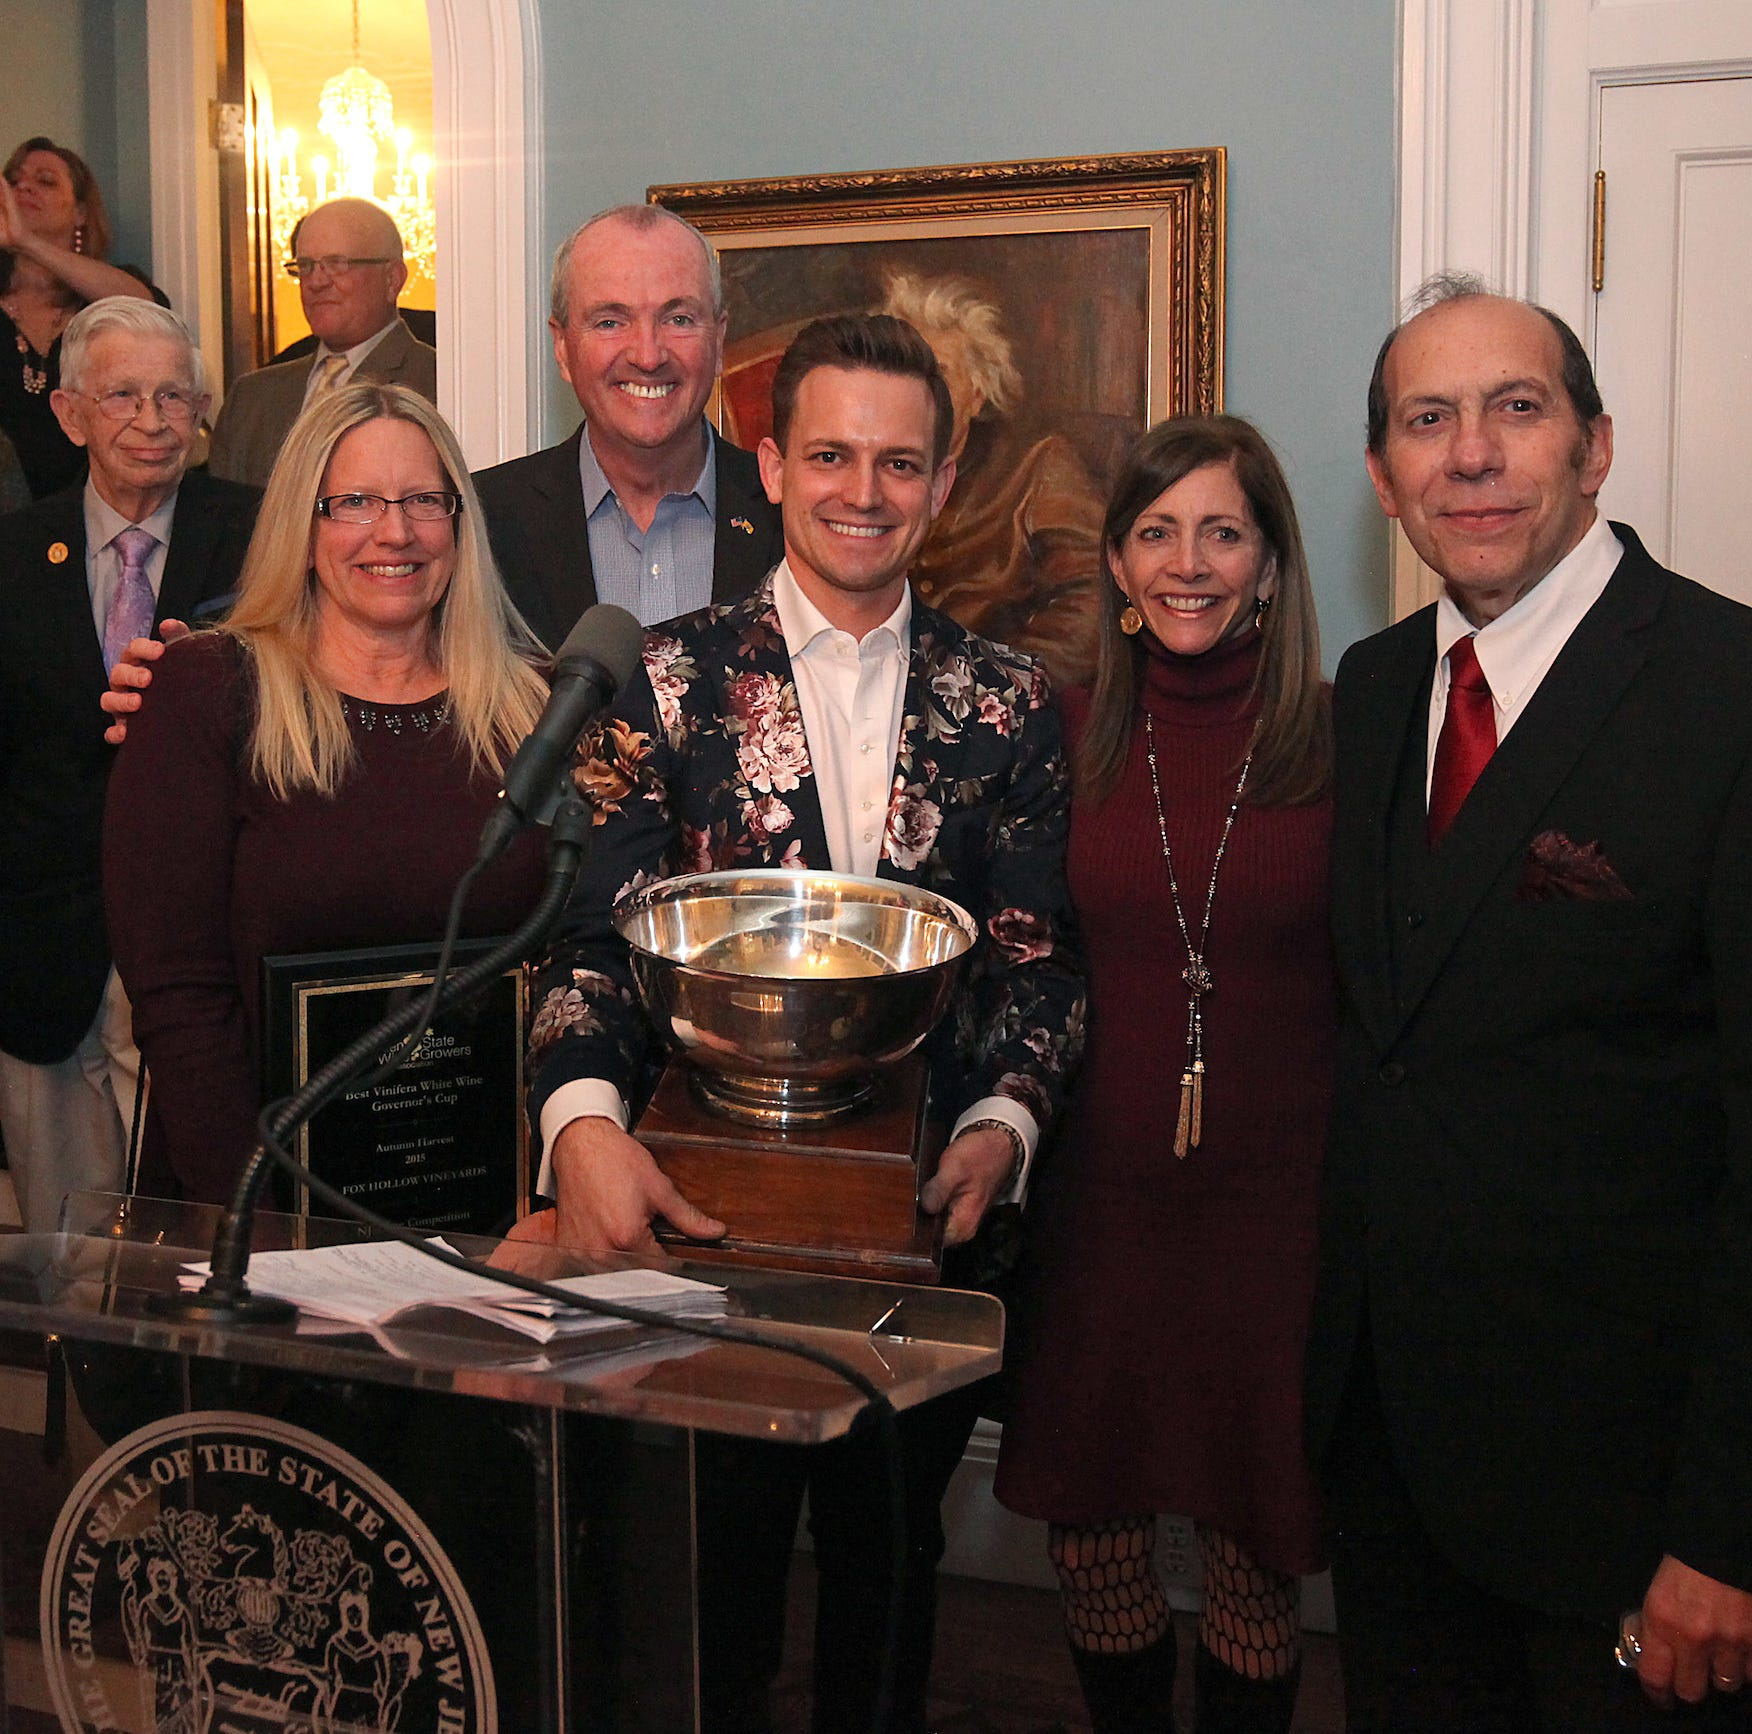 9 New Jersey wineries honored at Drumthwacket statewide awards